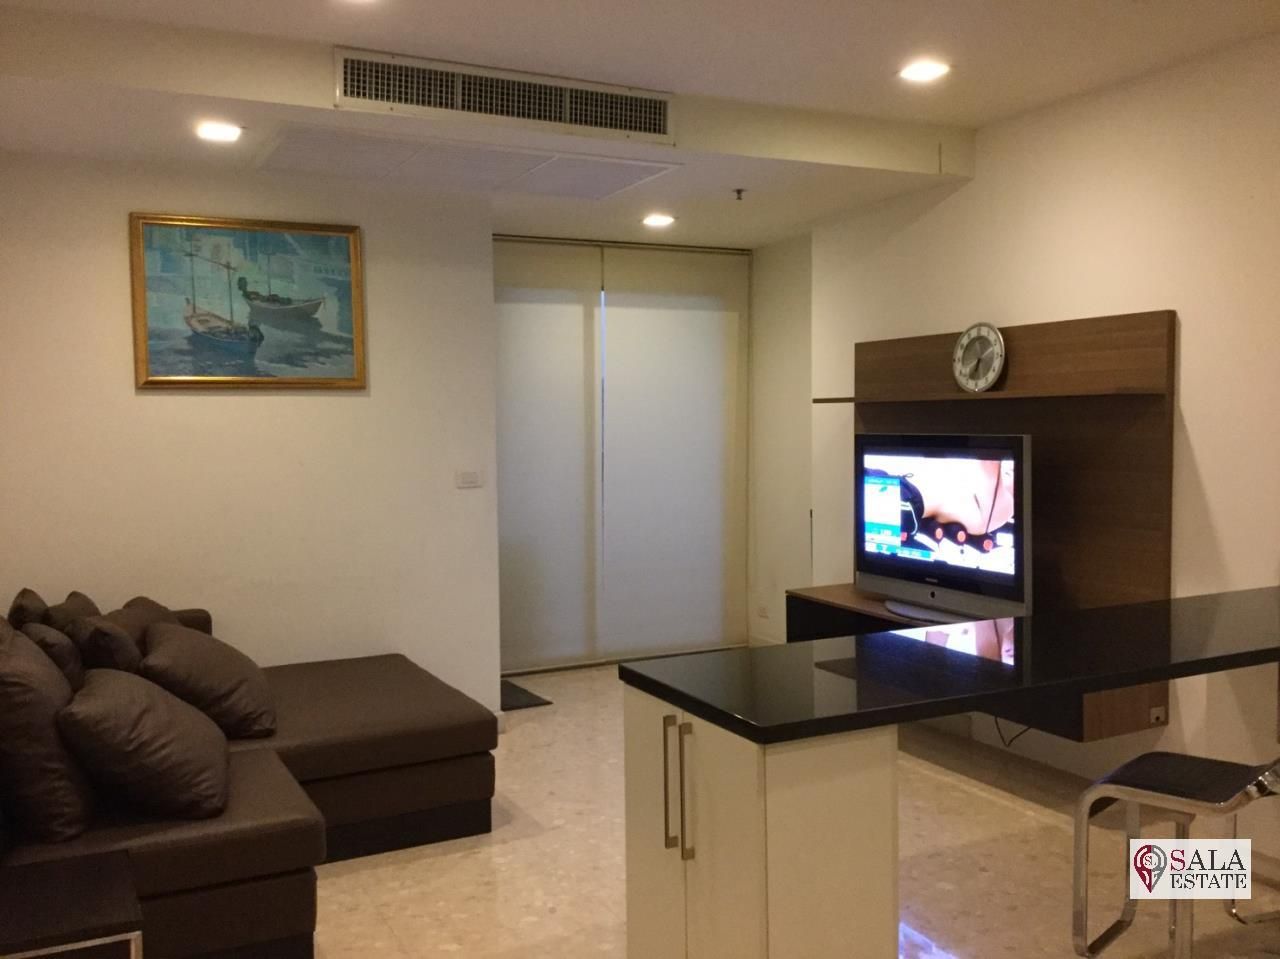 SALA ESTATE Agency's NUSASIRI – BTS EKKAMAI, 2 Bedroom 1 Bathroom, Fully furnished, City View 5